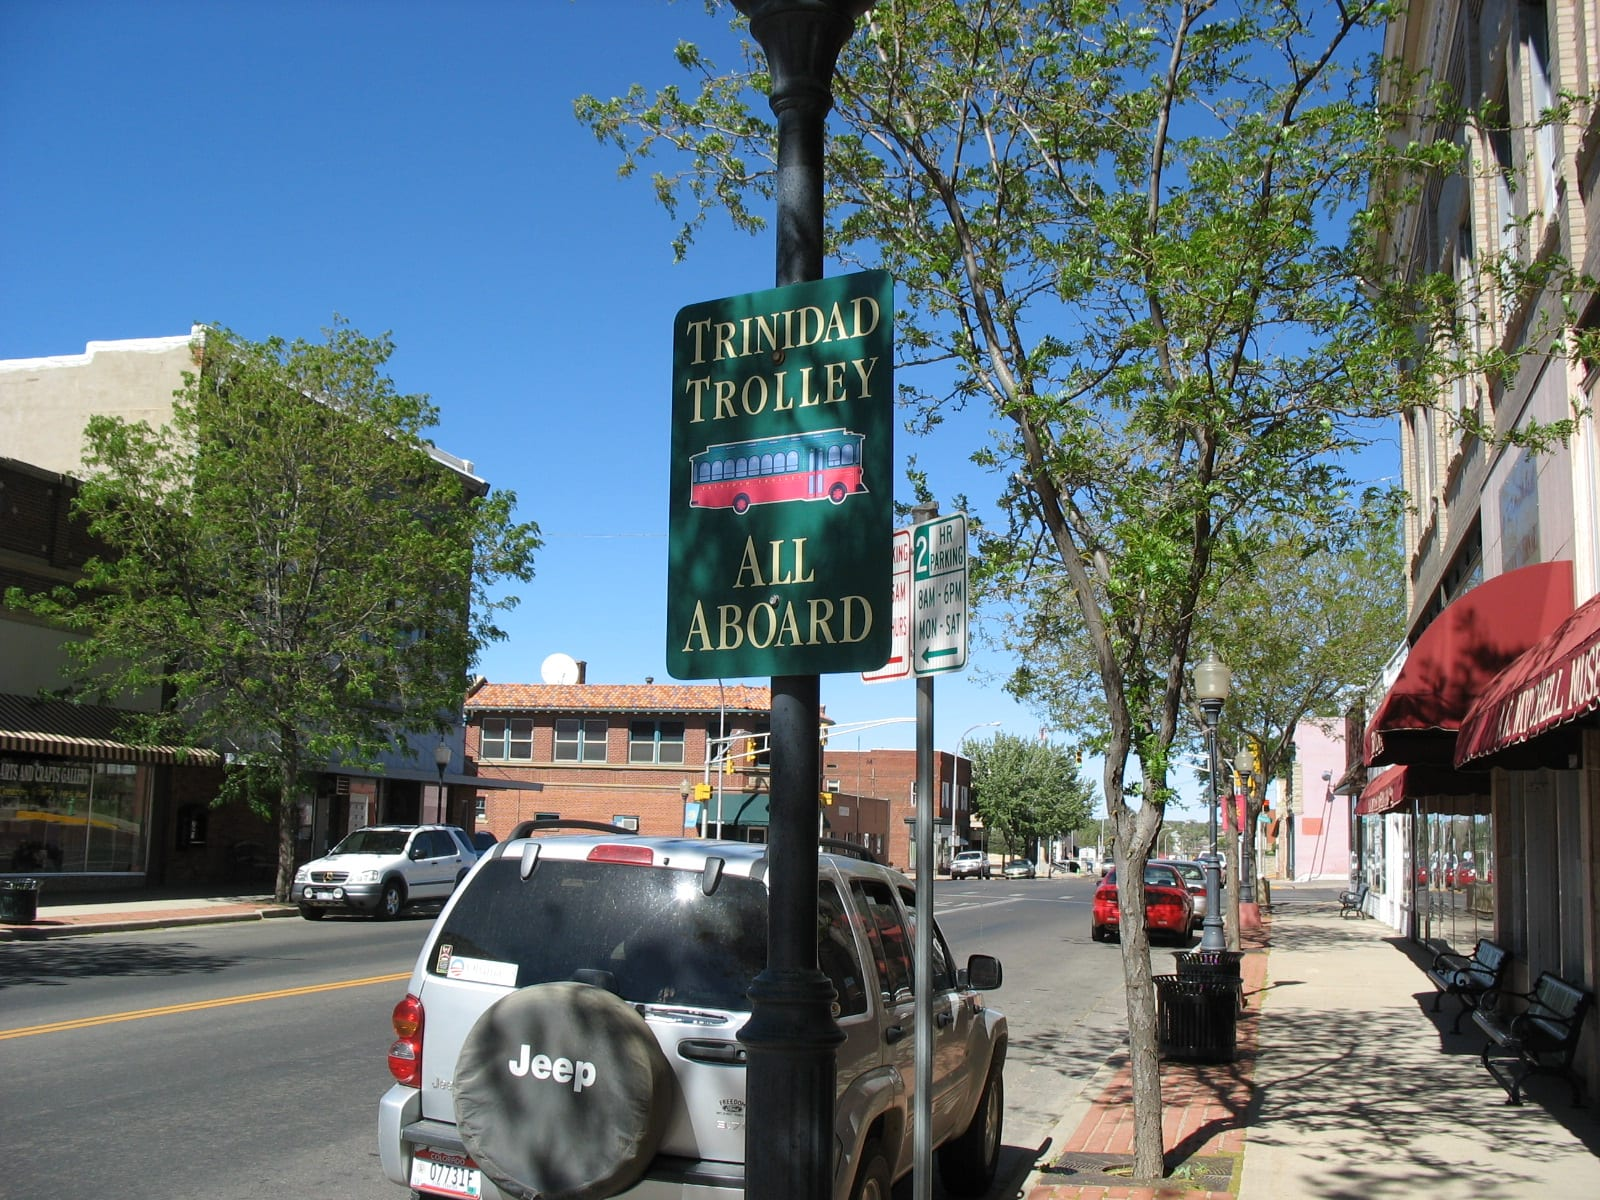 """Image of the Trinidad Trolley sign saying """"All Aboard"""" in Colorado"""